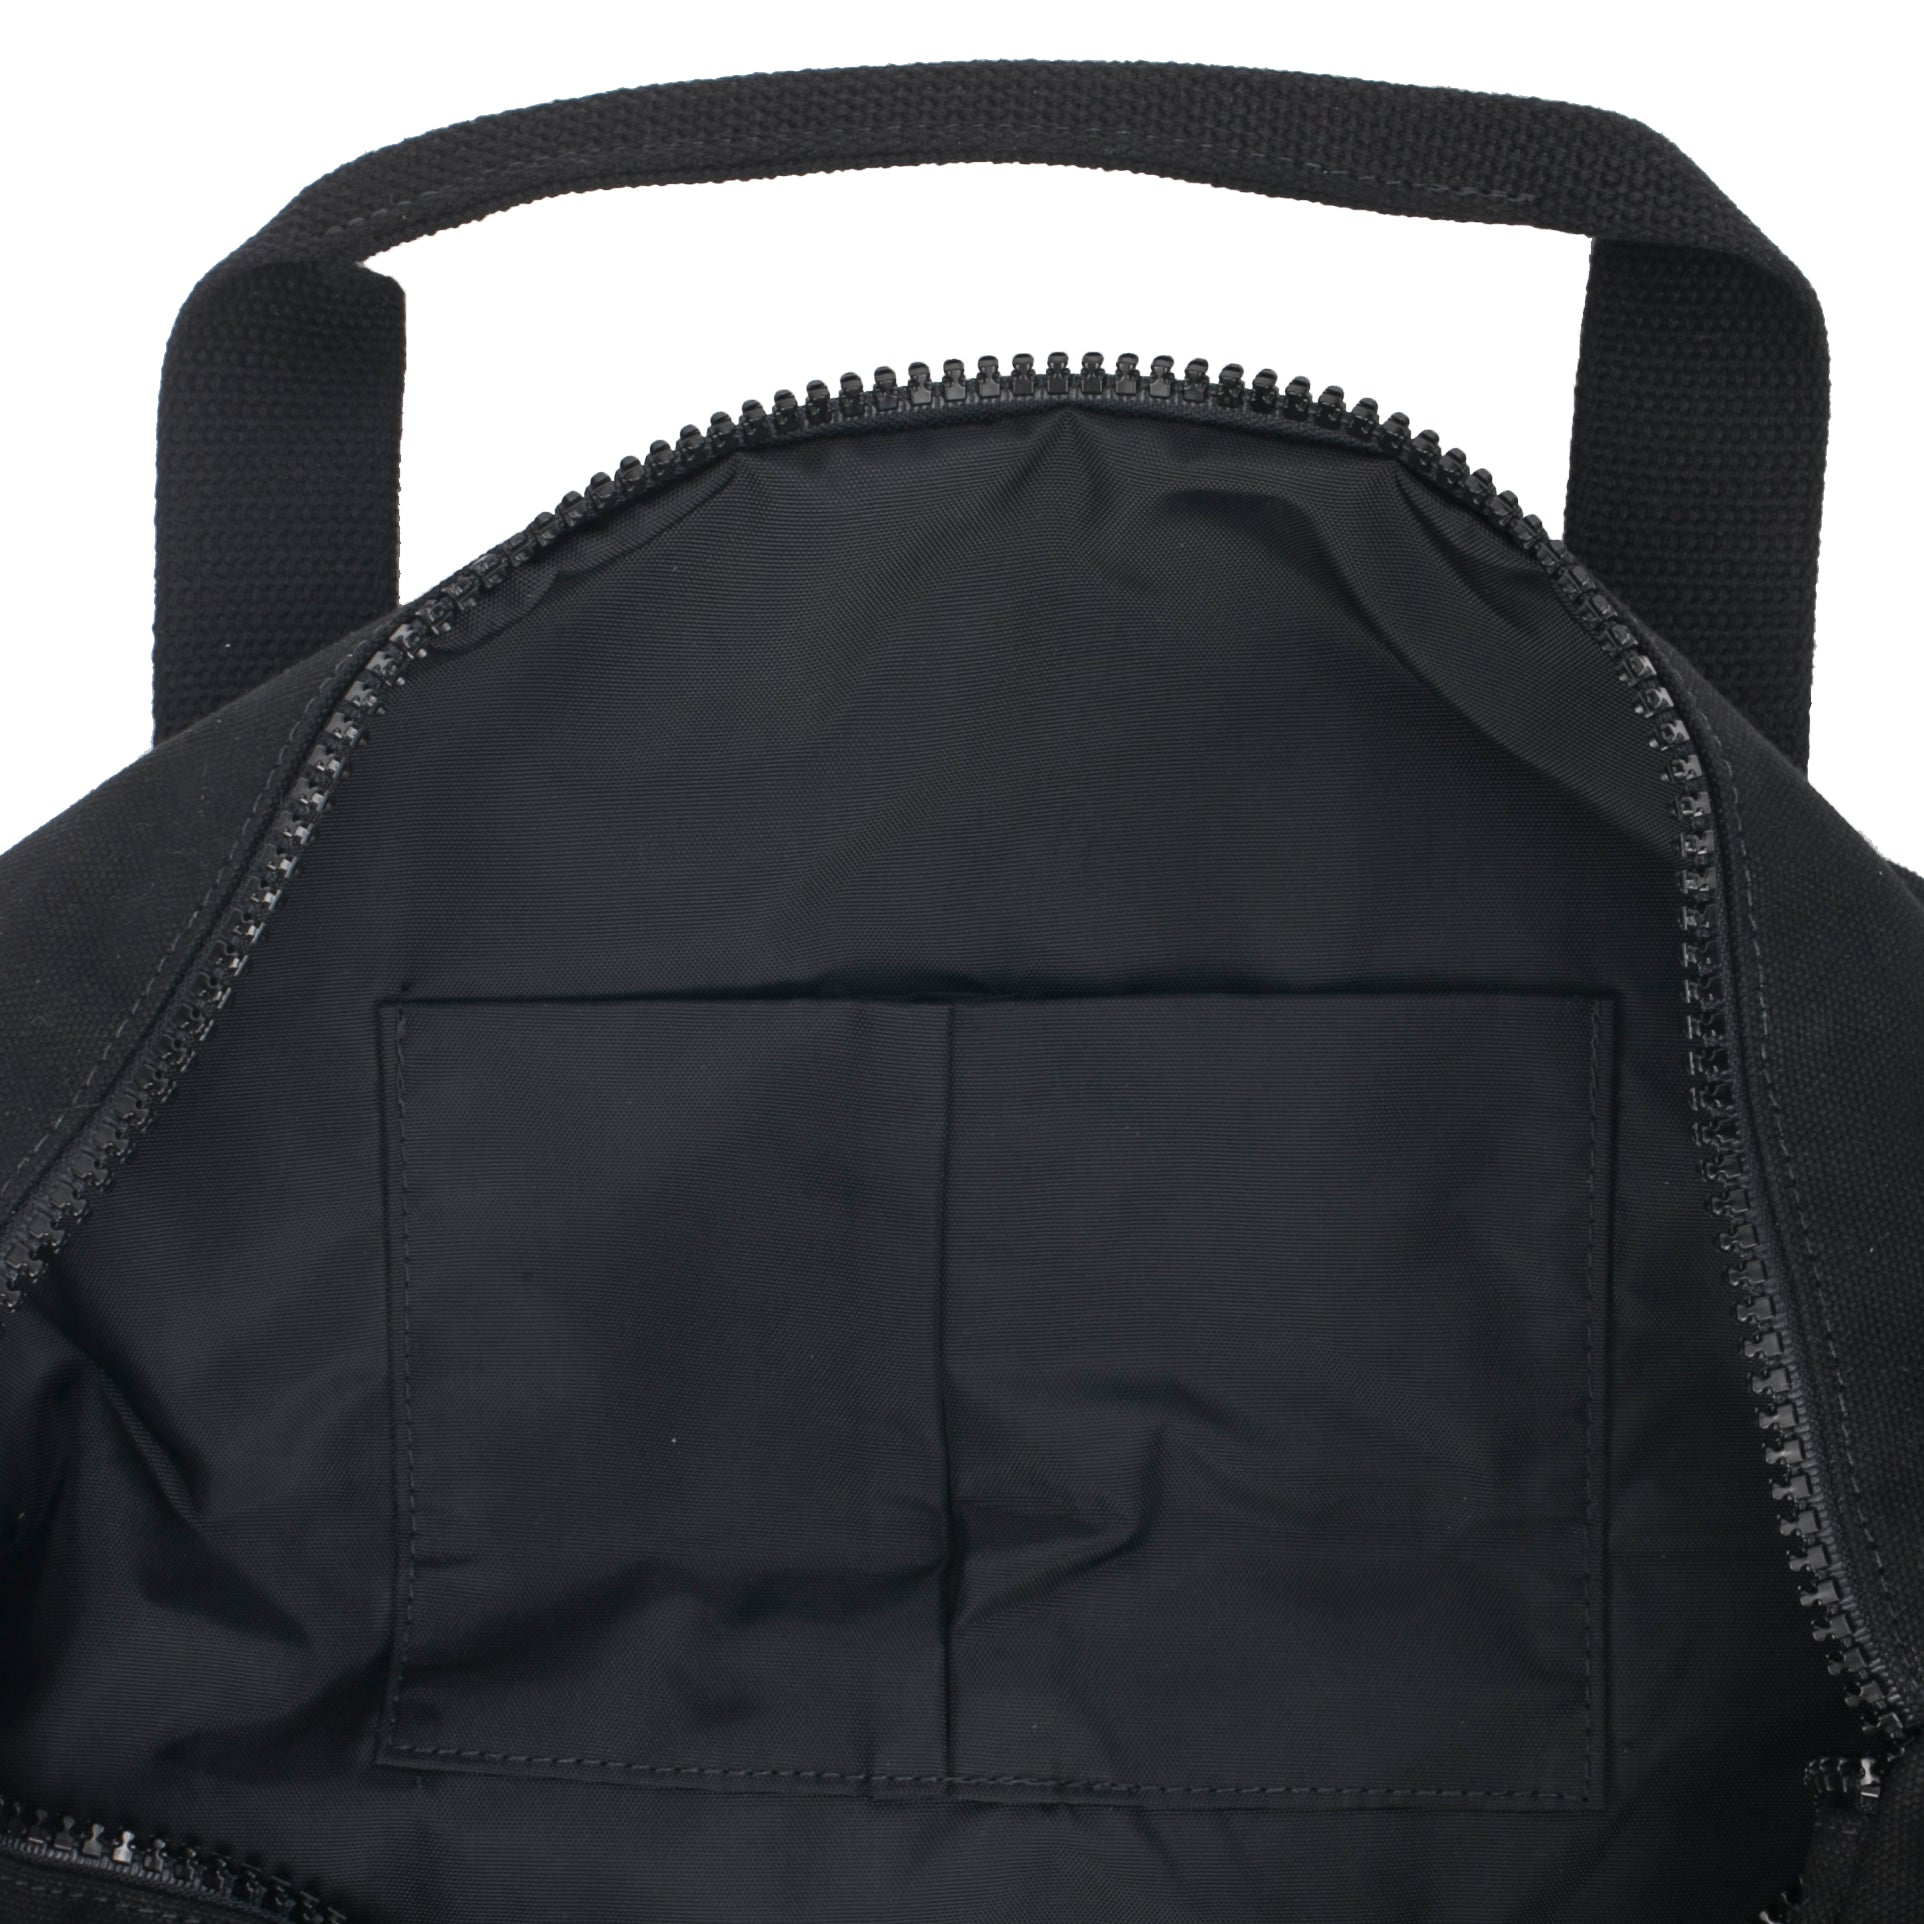 Men's Black Gym Duffel Bag